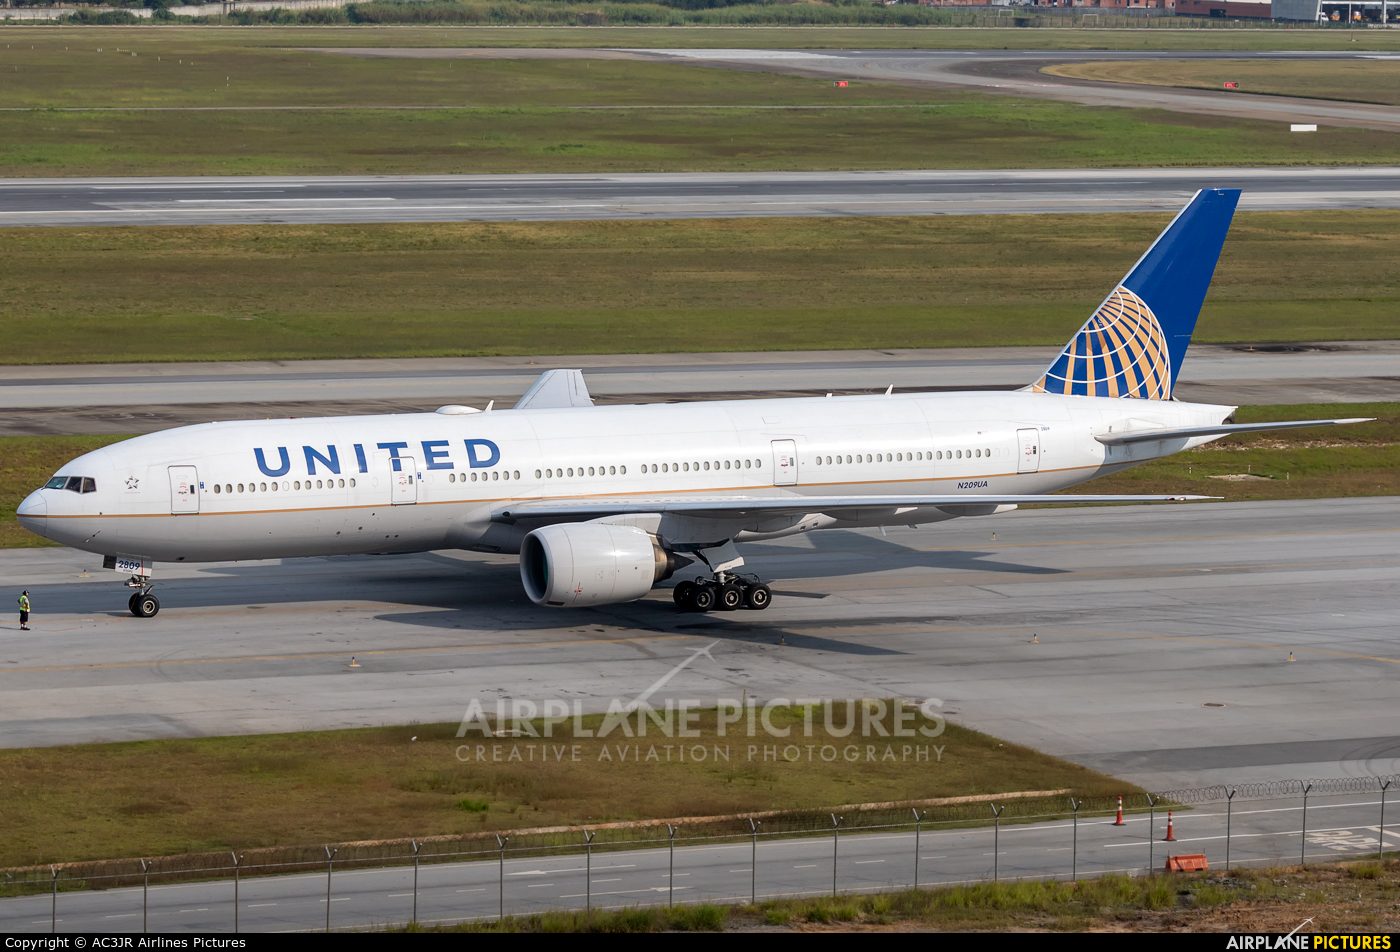 United Airlines N209UA aircraft at São Paulo - Guarulhos